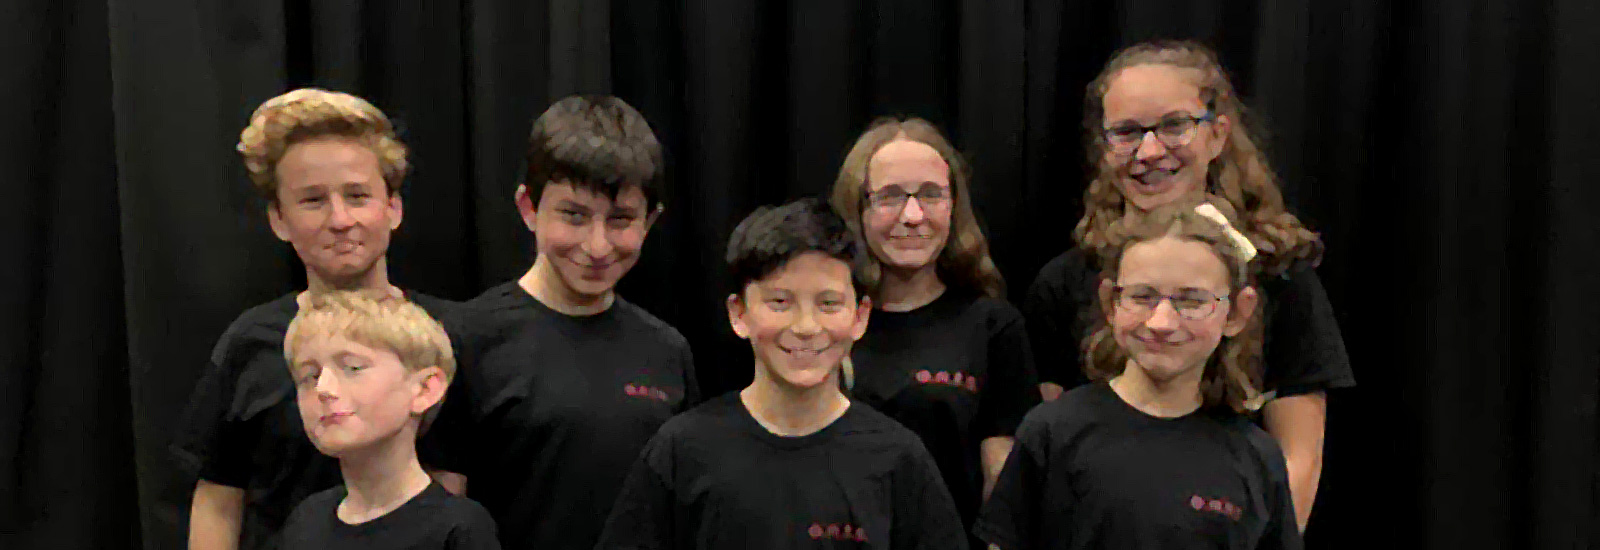 Drama class information for Act Now Theatre School (a.n.t.s.) in Southampton — drama classes for children aged 5 to 10+.